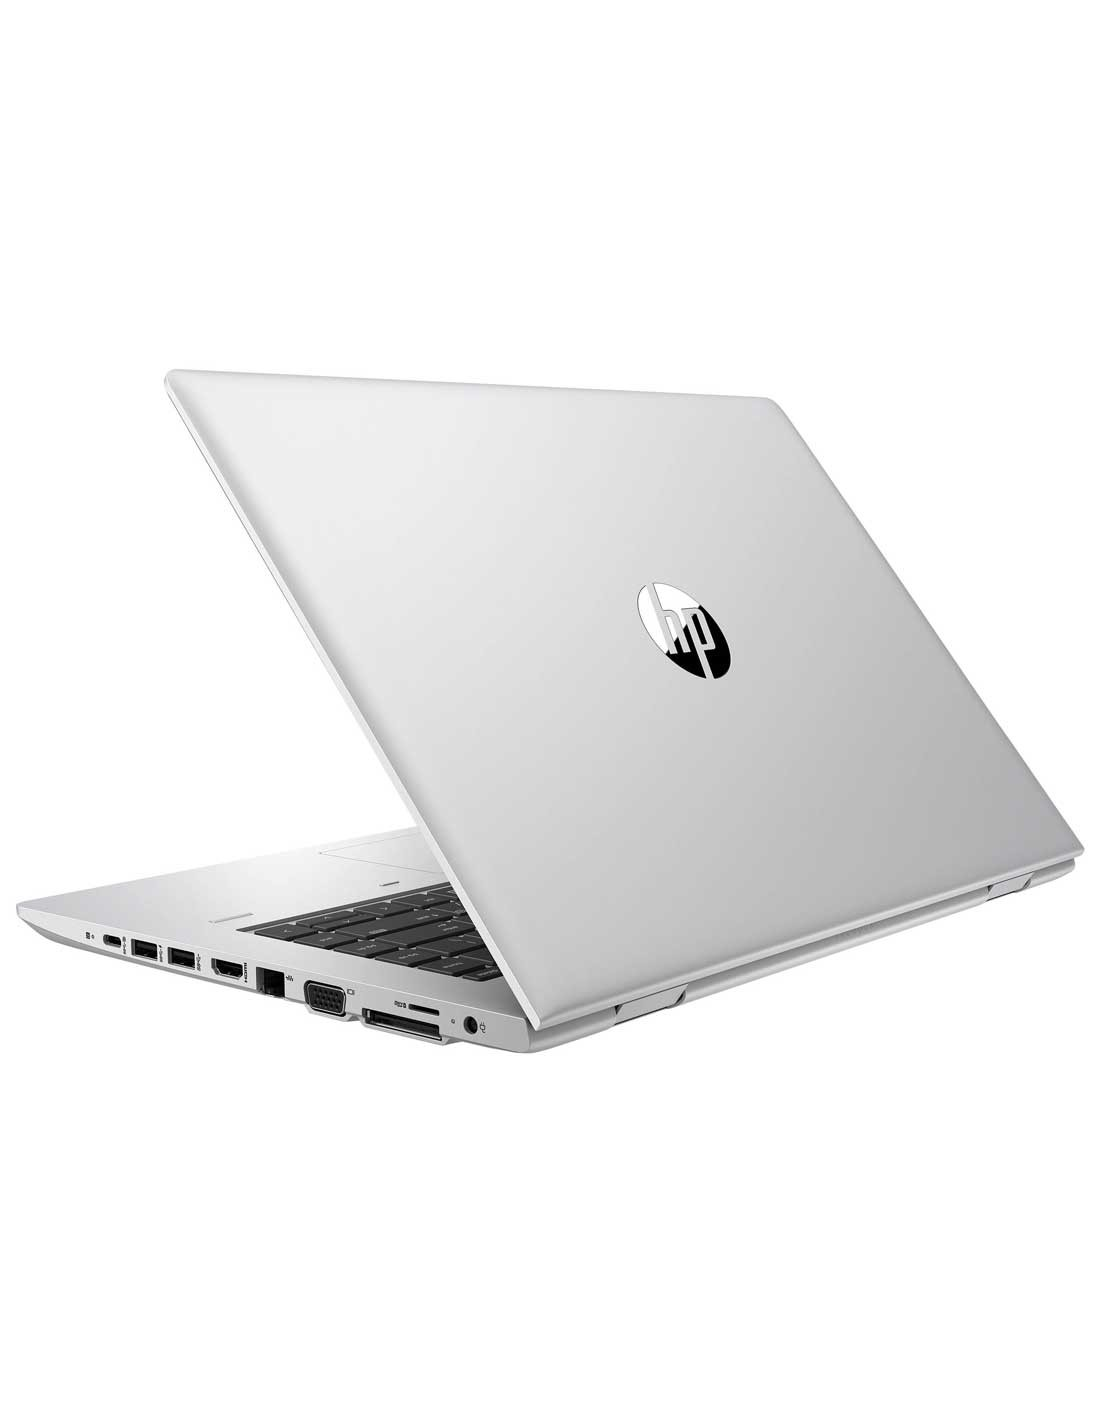 HP ProBook 640 G4 Notebook i5 images and photos